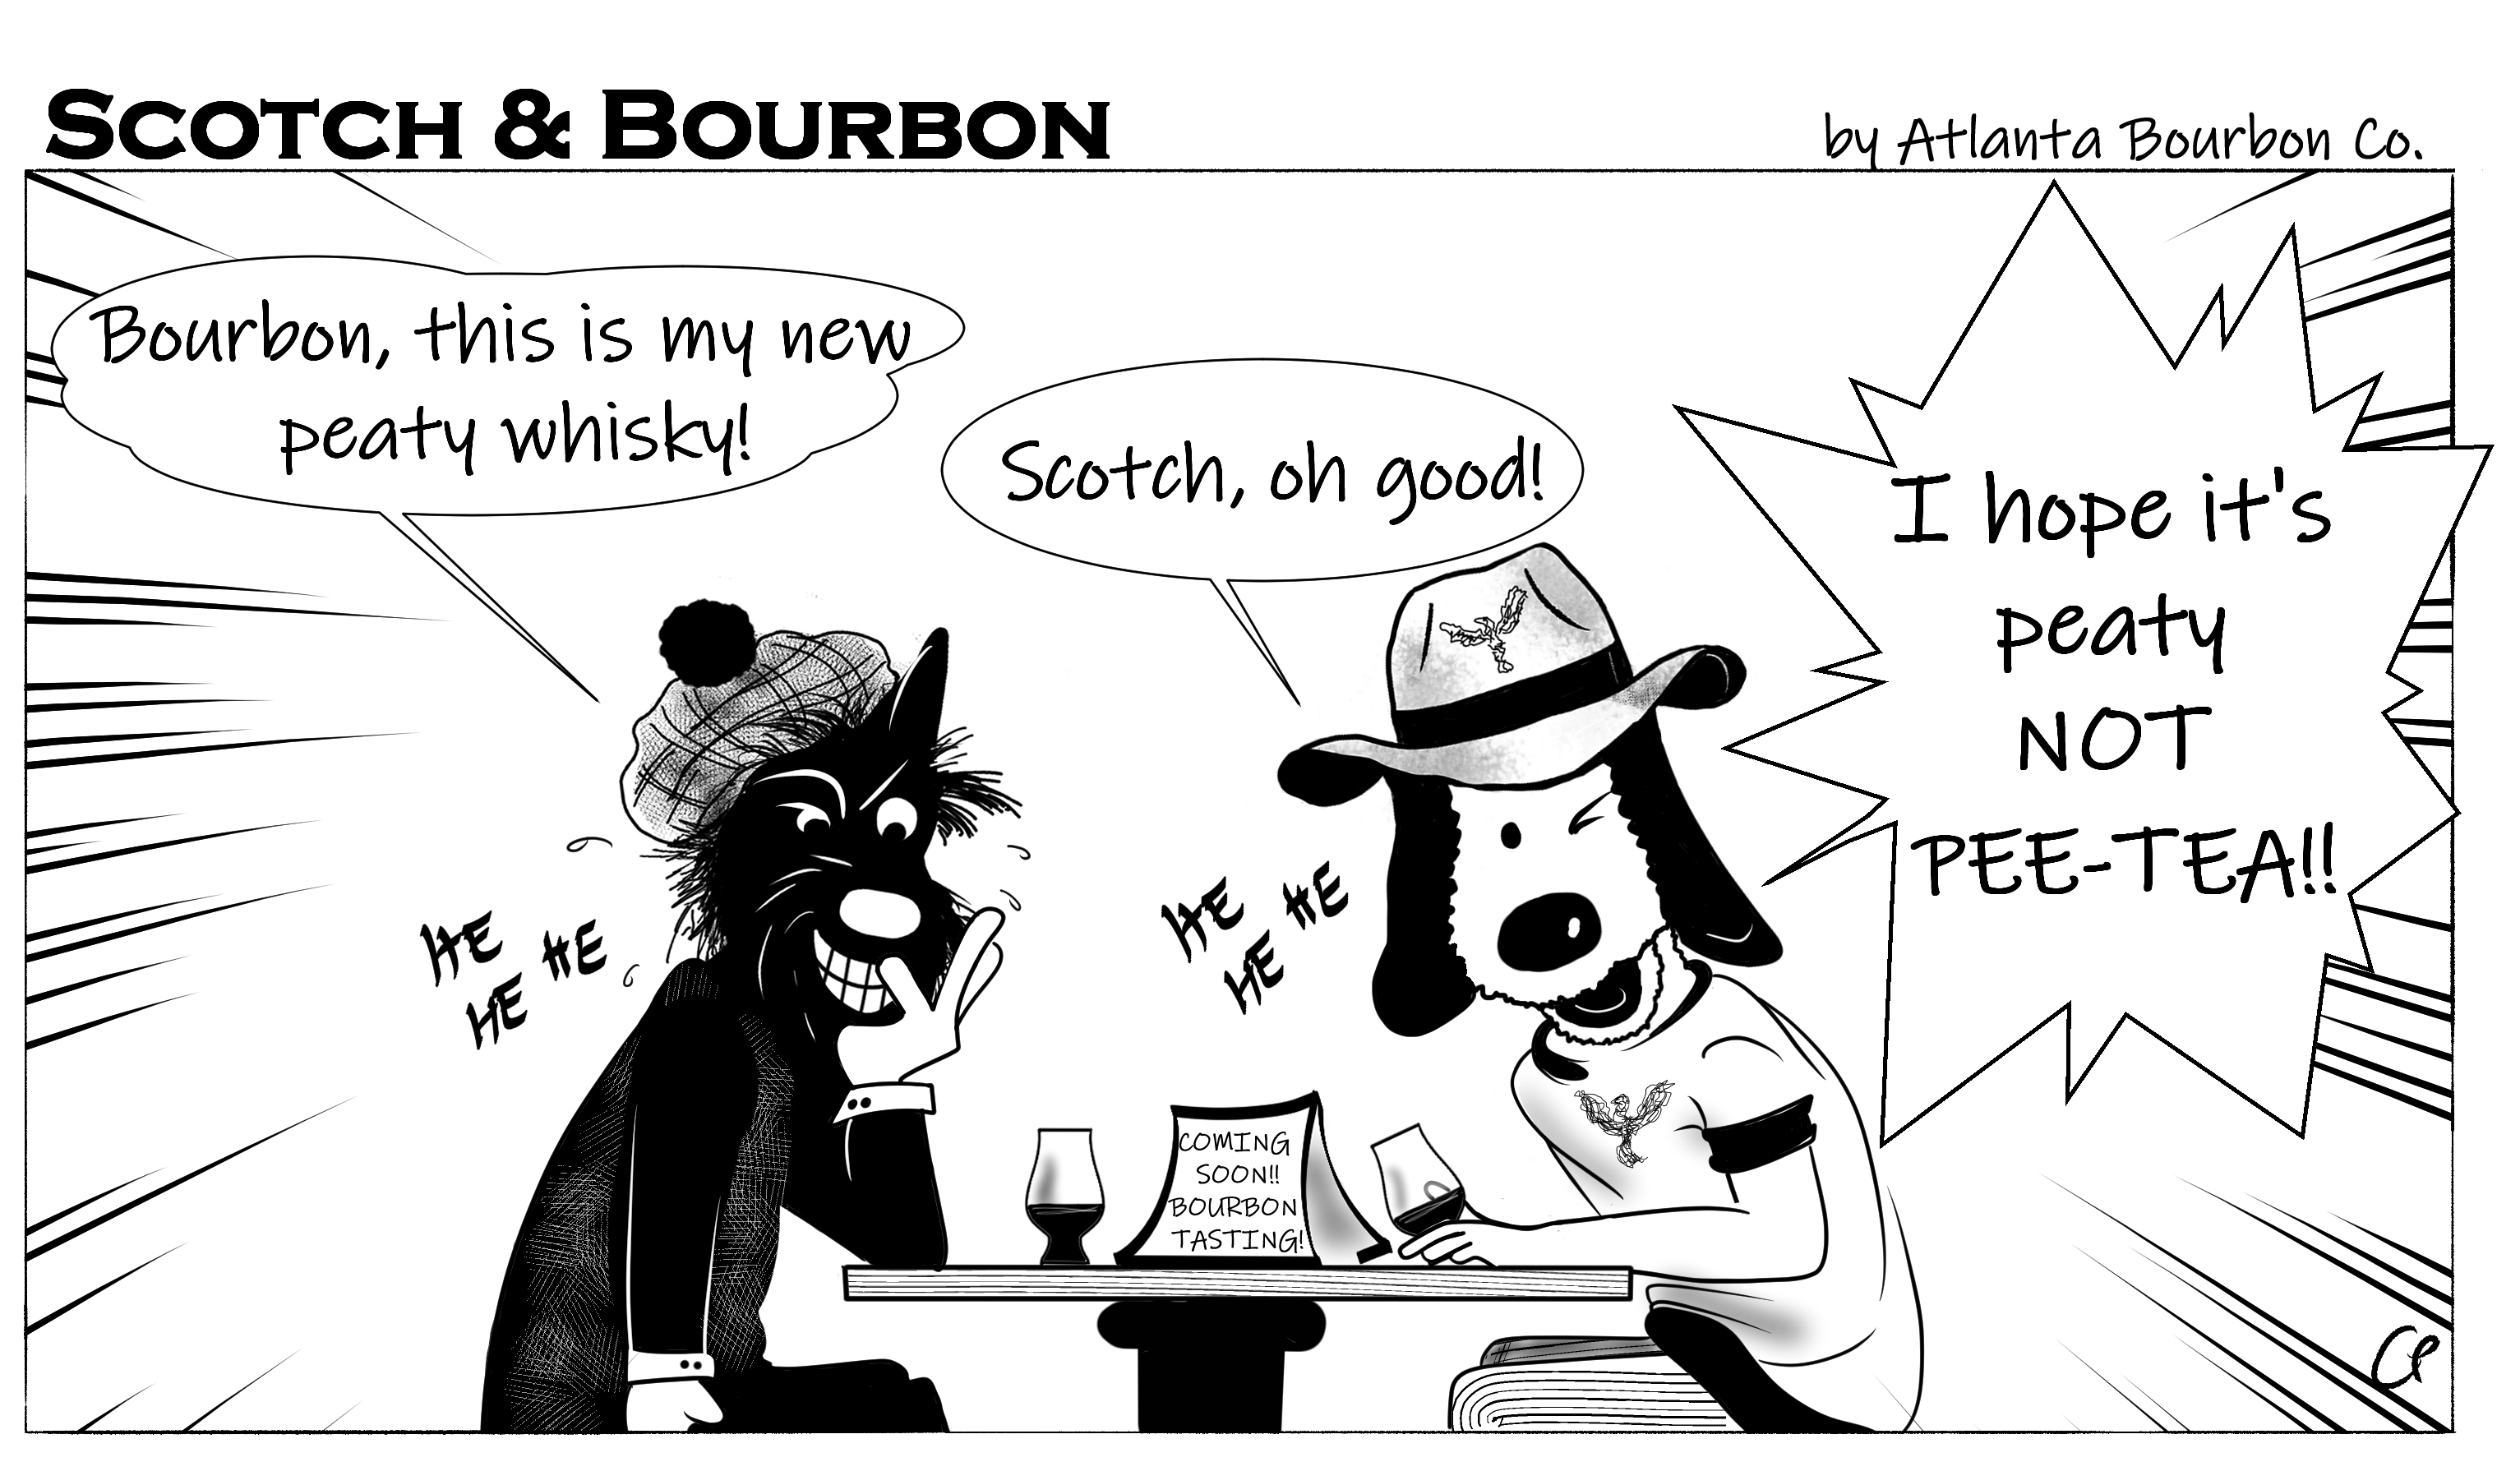 Scotch & Bourbon Cartoon: I hope it's peaty whisky! #10